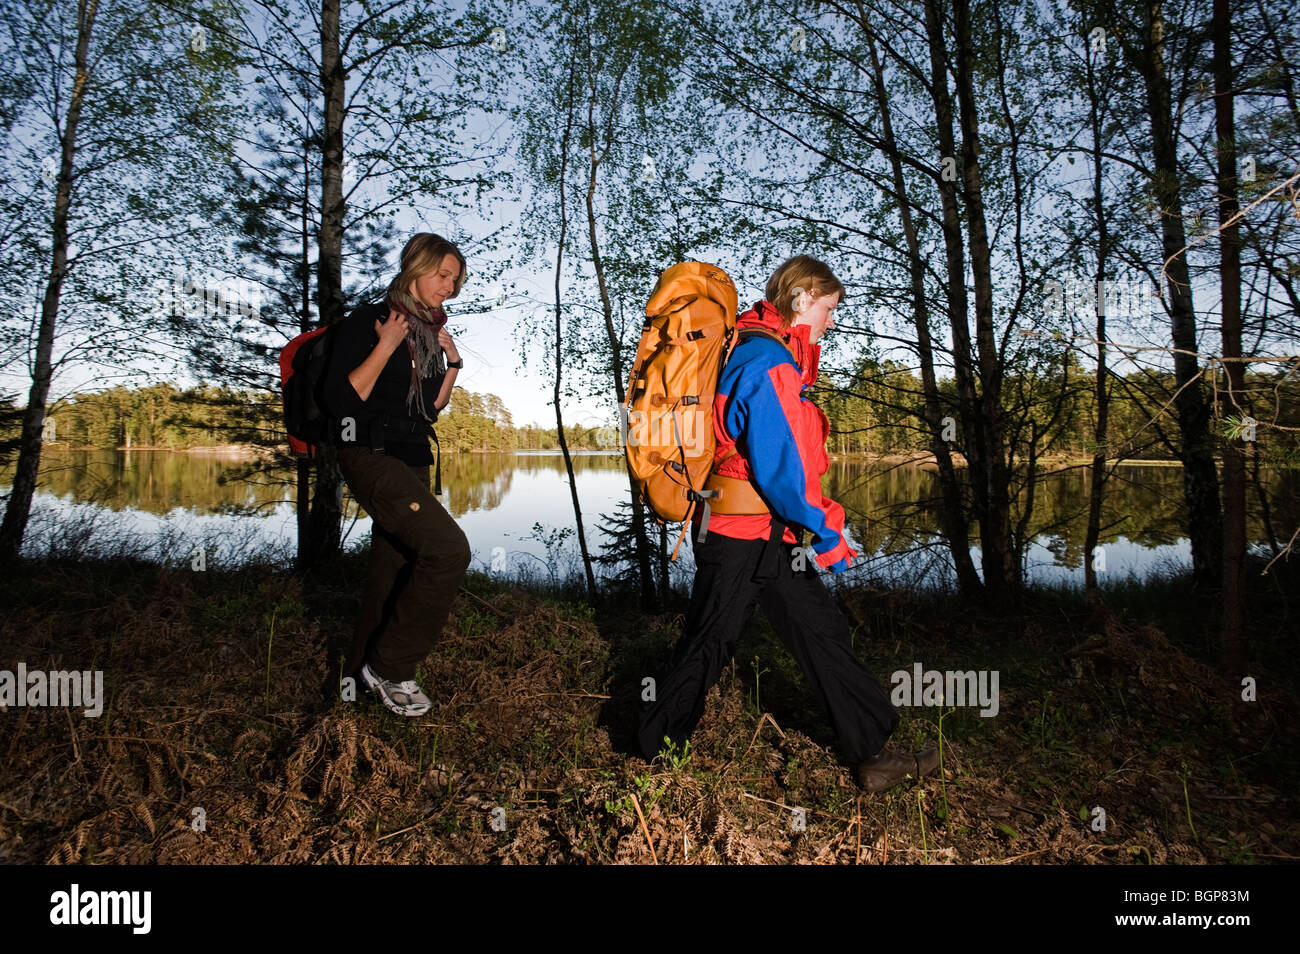 Two women during a walking-tour, Sweden. - Stock Image